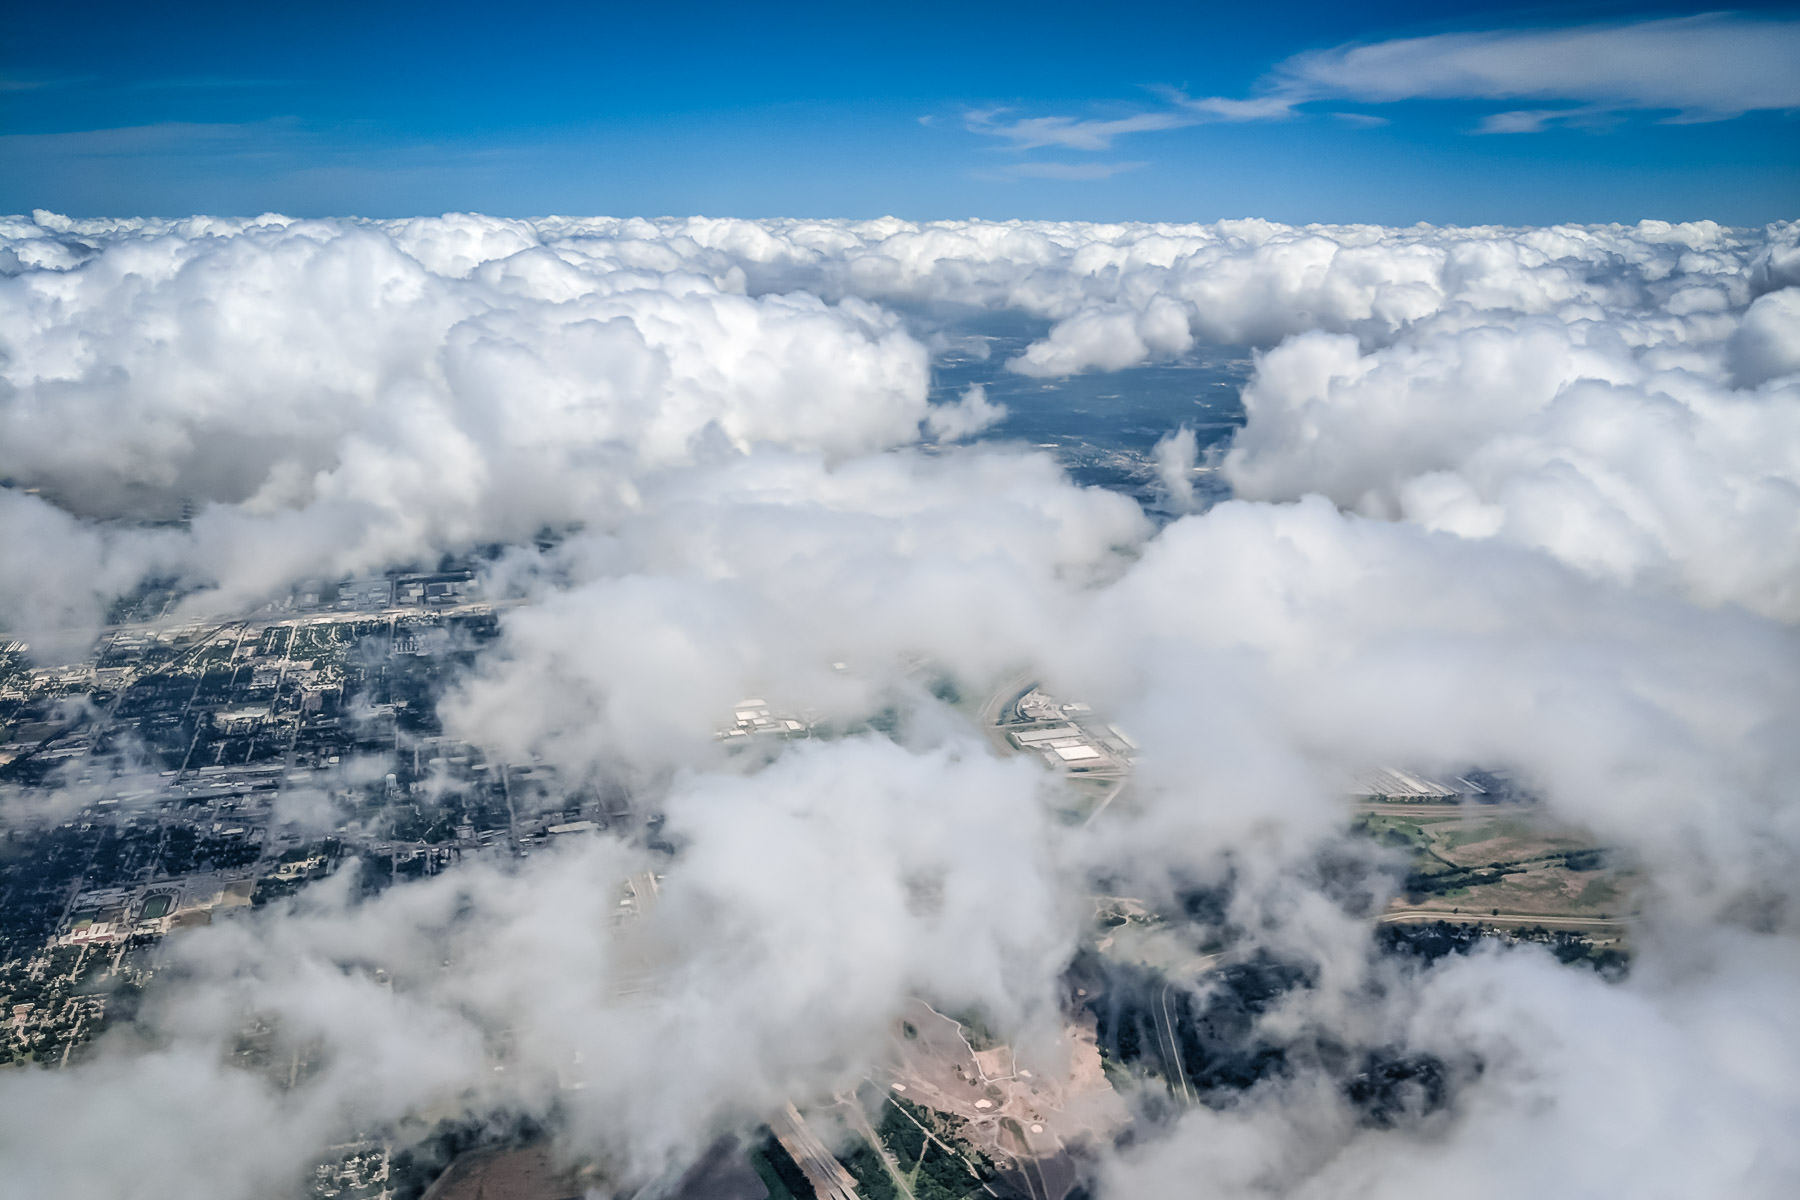 Flying over the cloudscape covering the outskirts of Dallas, Texas.